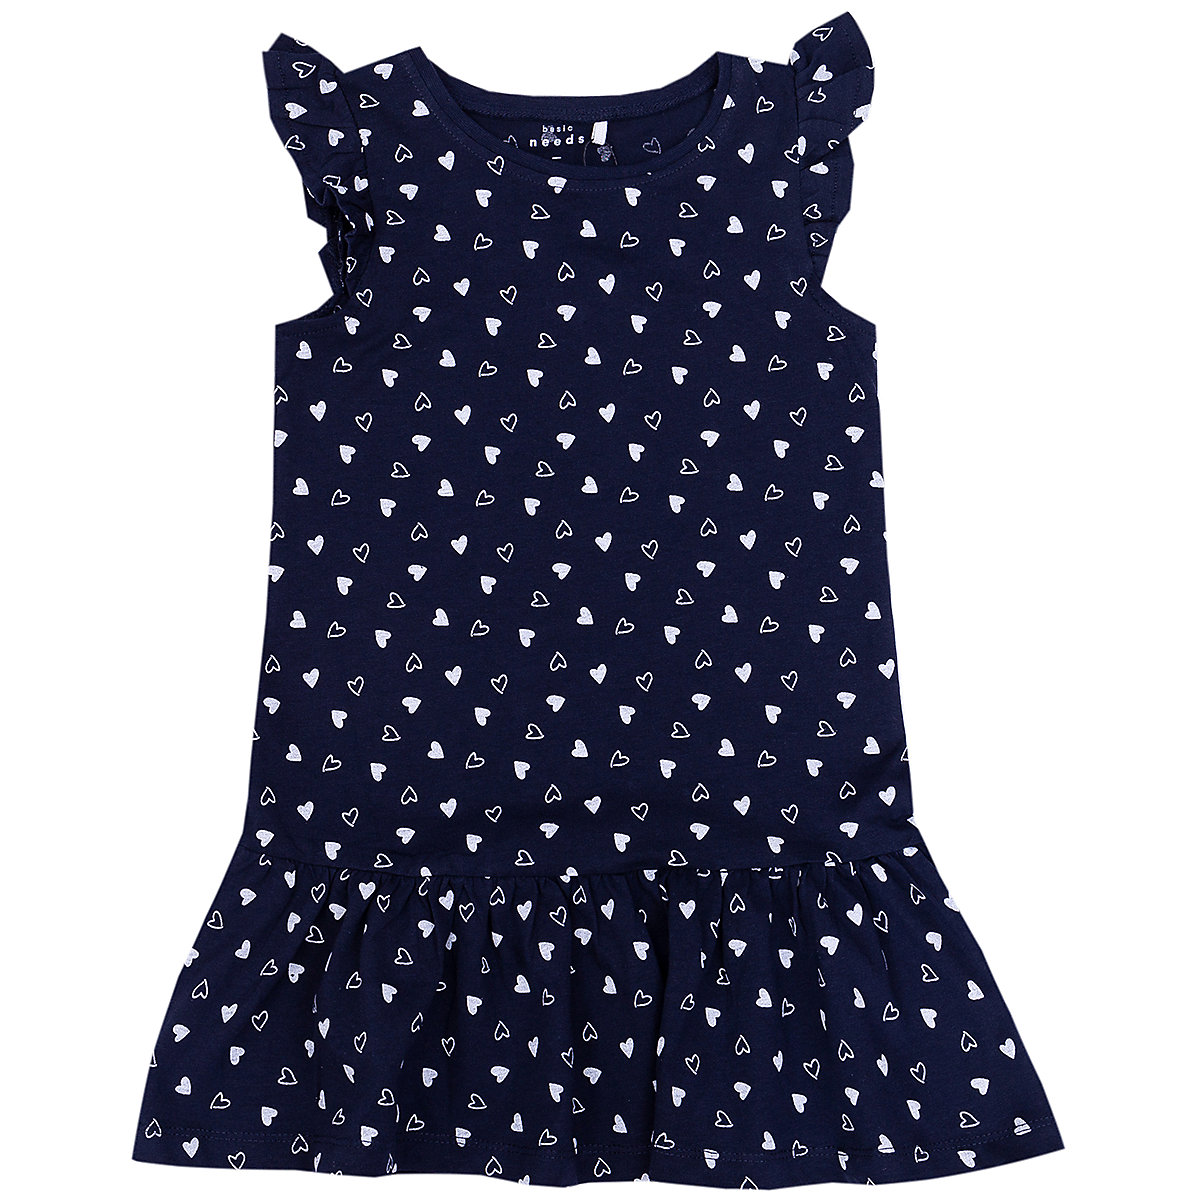 NAME IT Dresses 9383944 Dress girl children checkered pattern collar fitted silhouette sequins Cotton Casual Blue Short Sleeve ruffle collar long sleeve lace crochet sheath dress